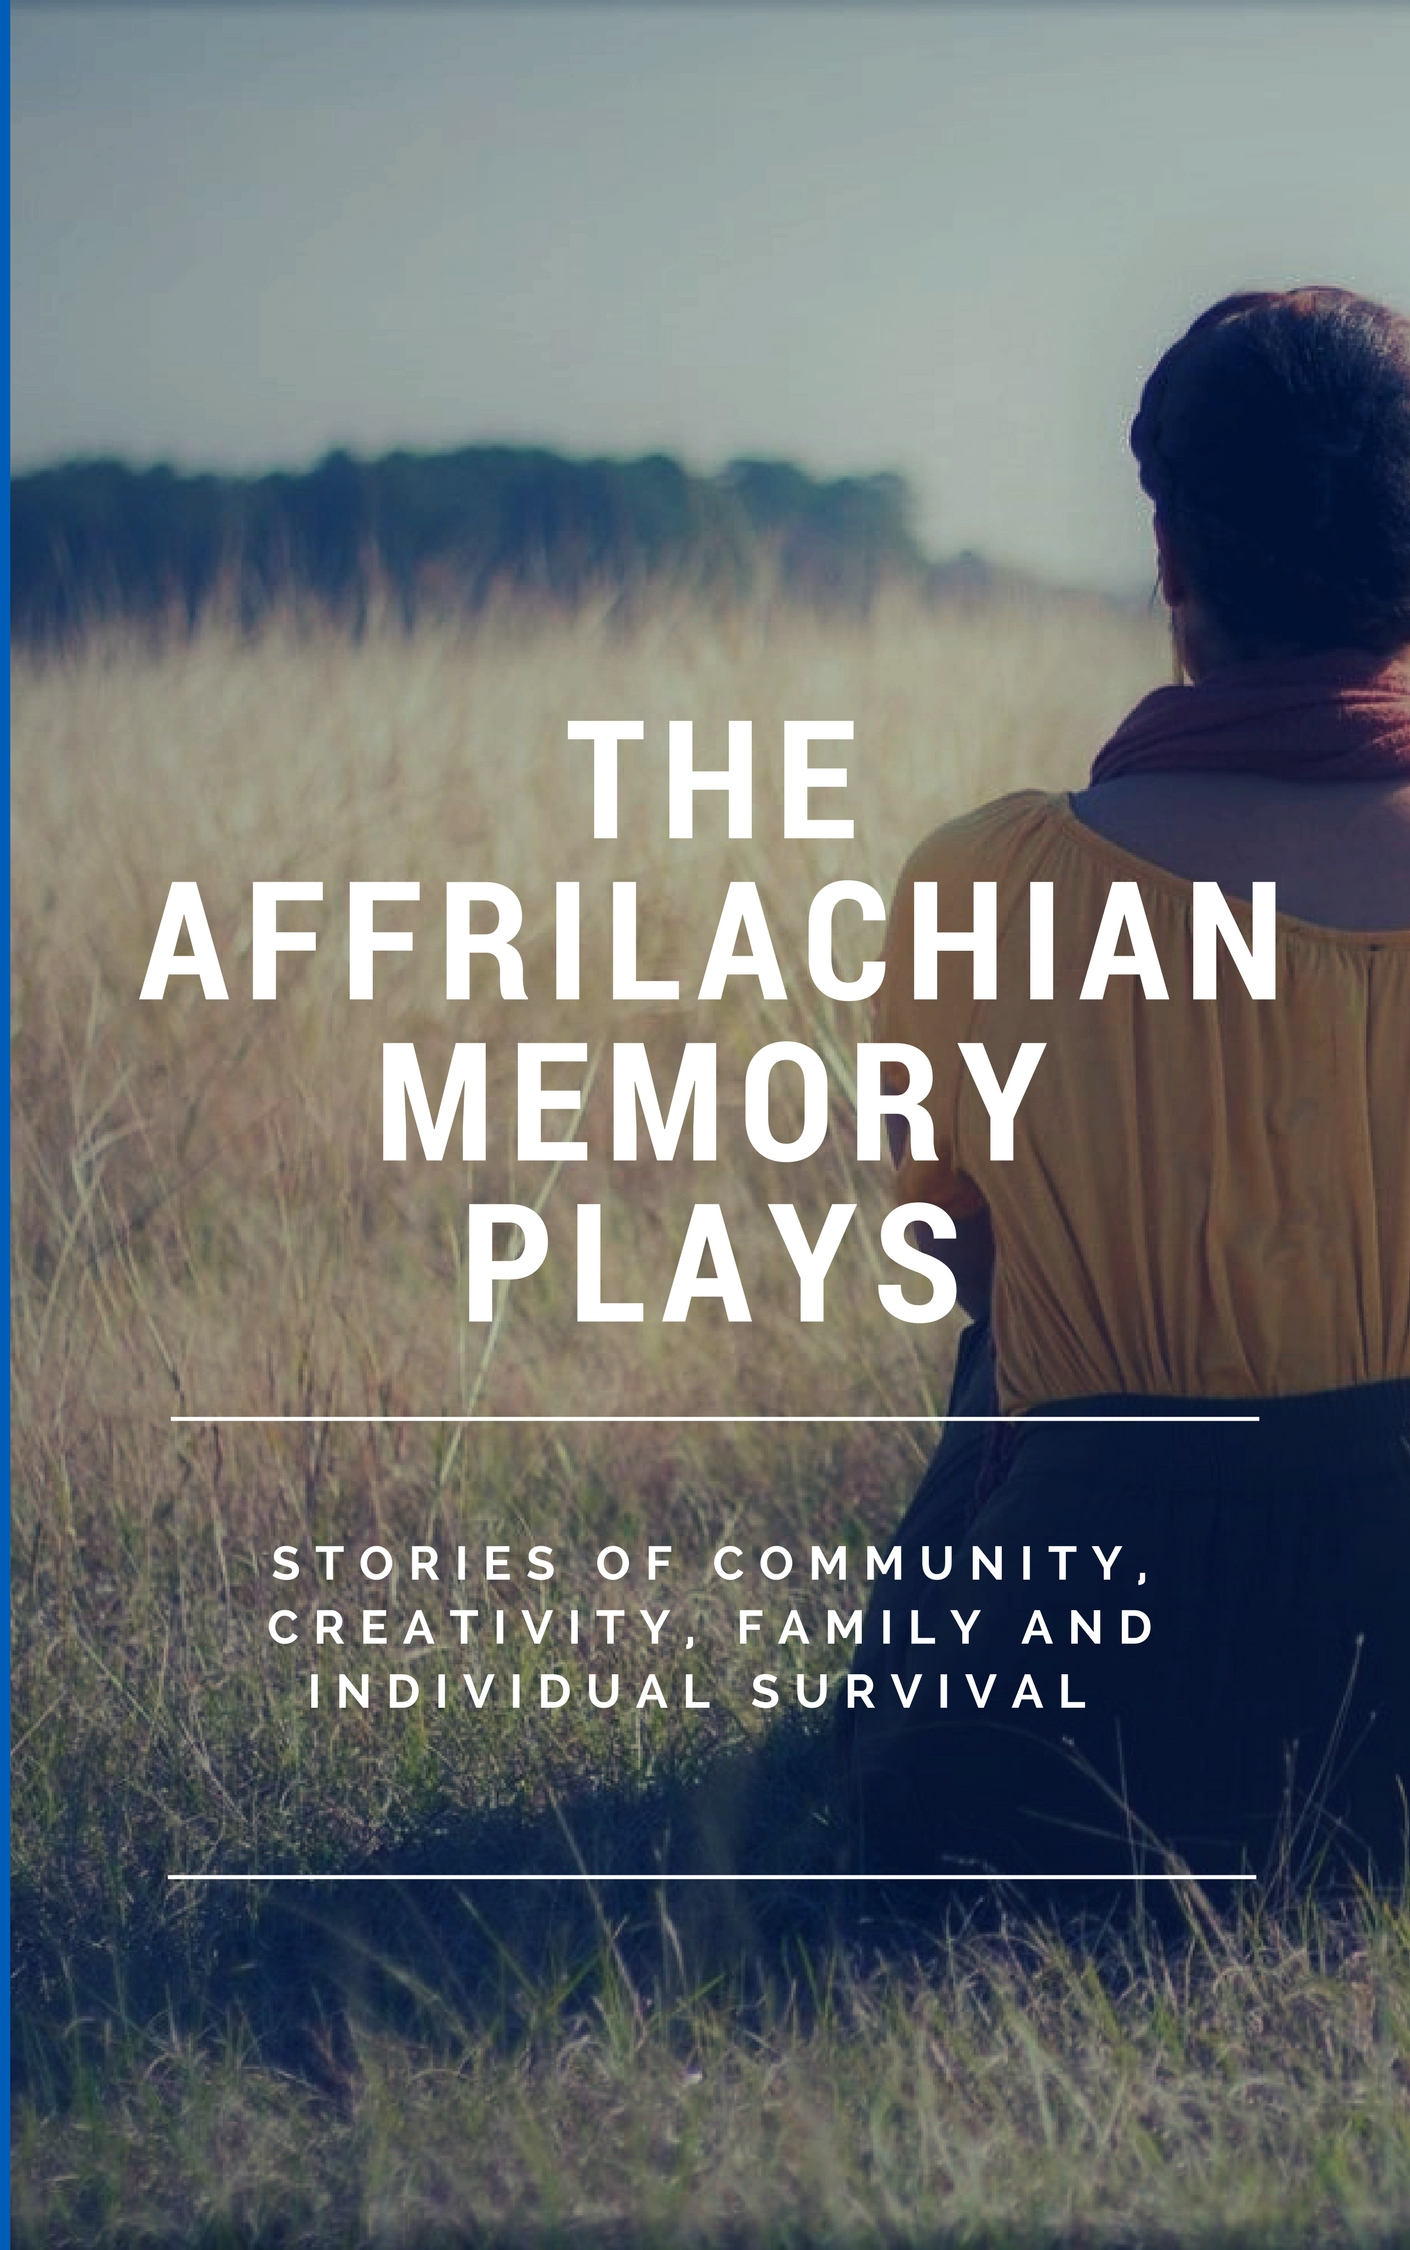 Our Journey - The Affrilachian Memory Play series, serves as a Performative Inquiry for understanding Affrilachian identity in its communal, familial and creative iterations.